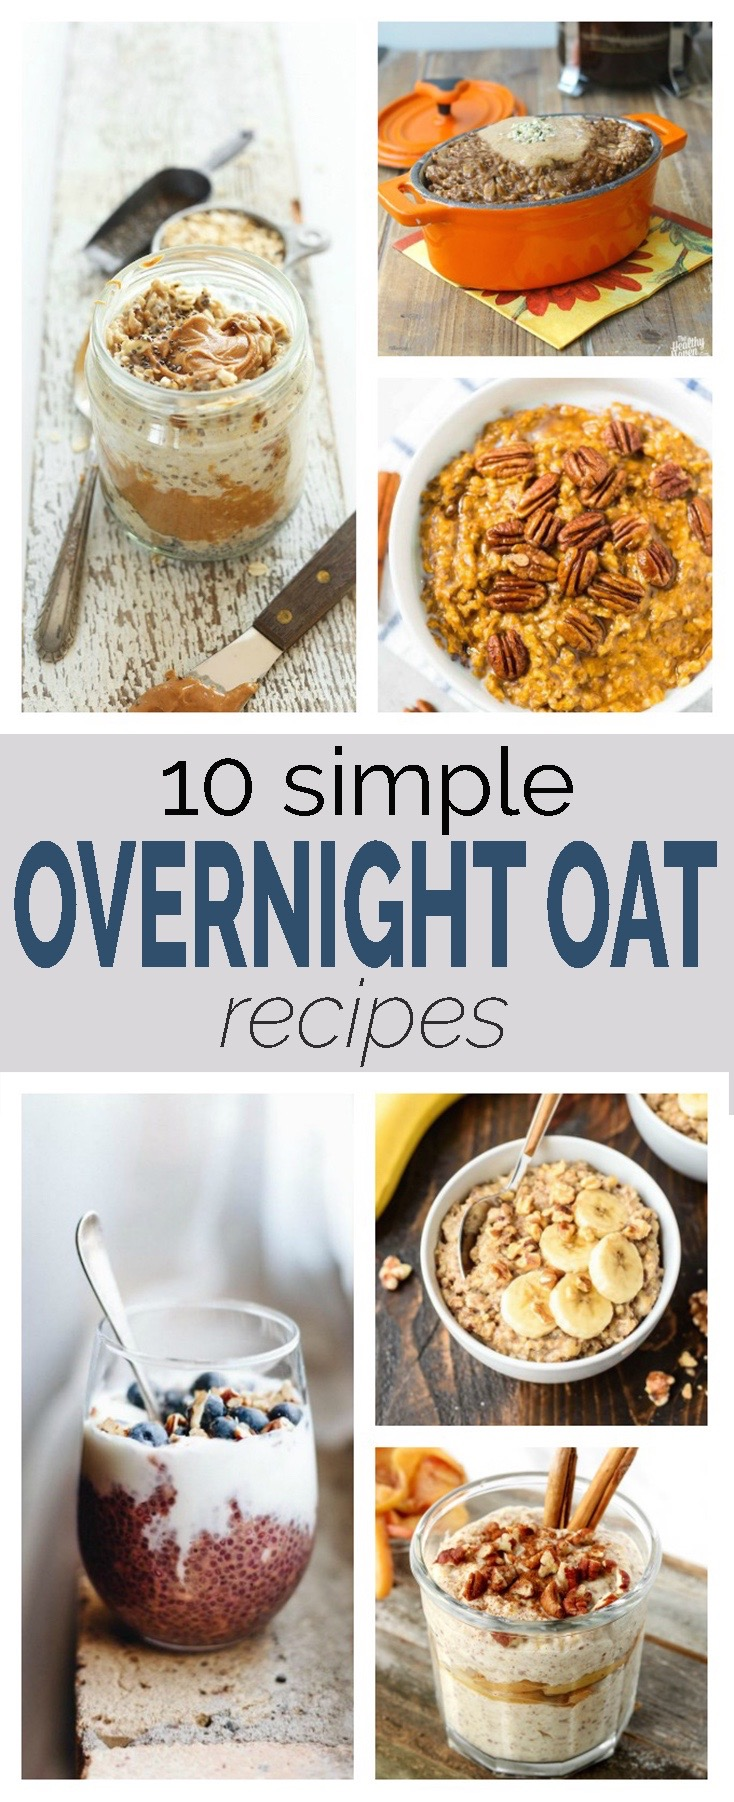 A roundup up 10 Simple Overnight Oat Recipes.